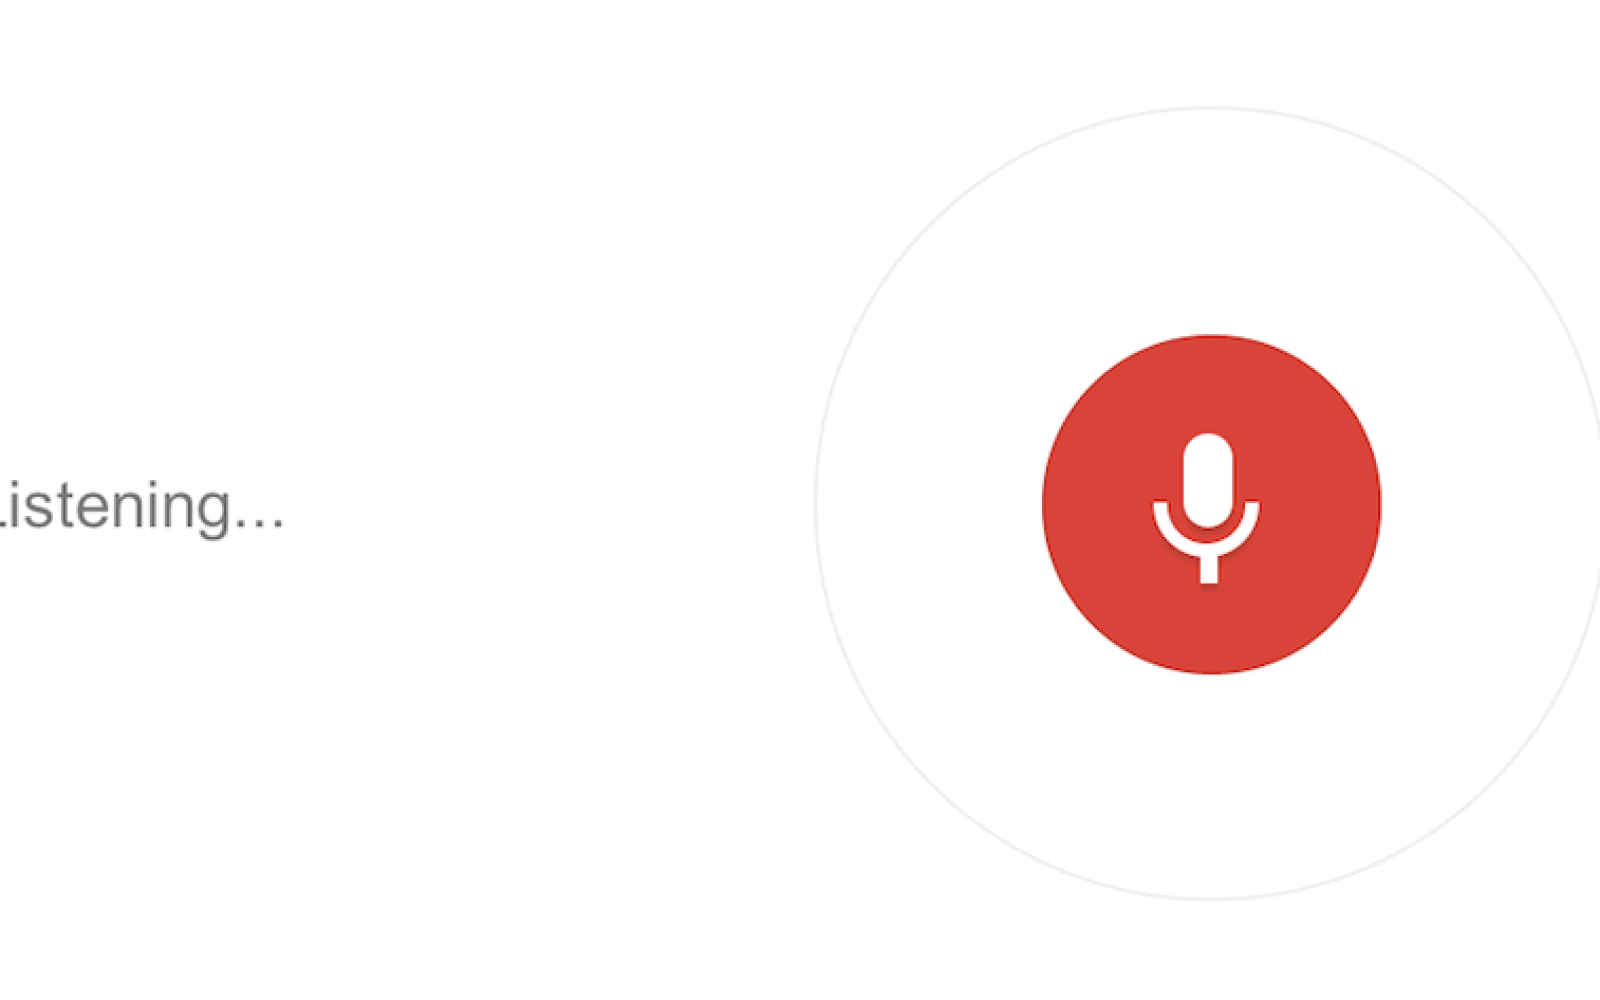 Some users noticing offline voice commands for some